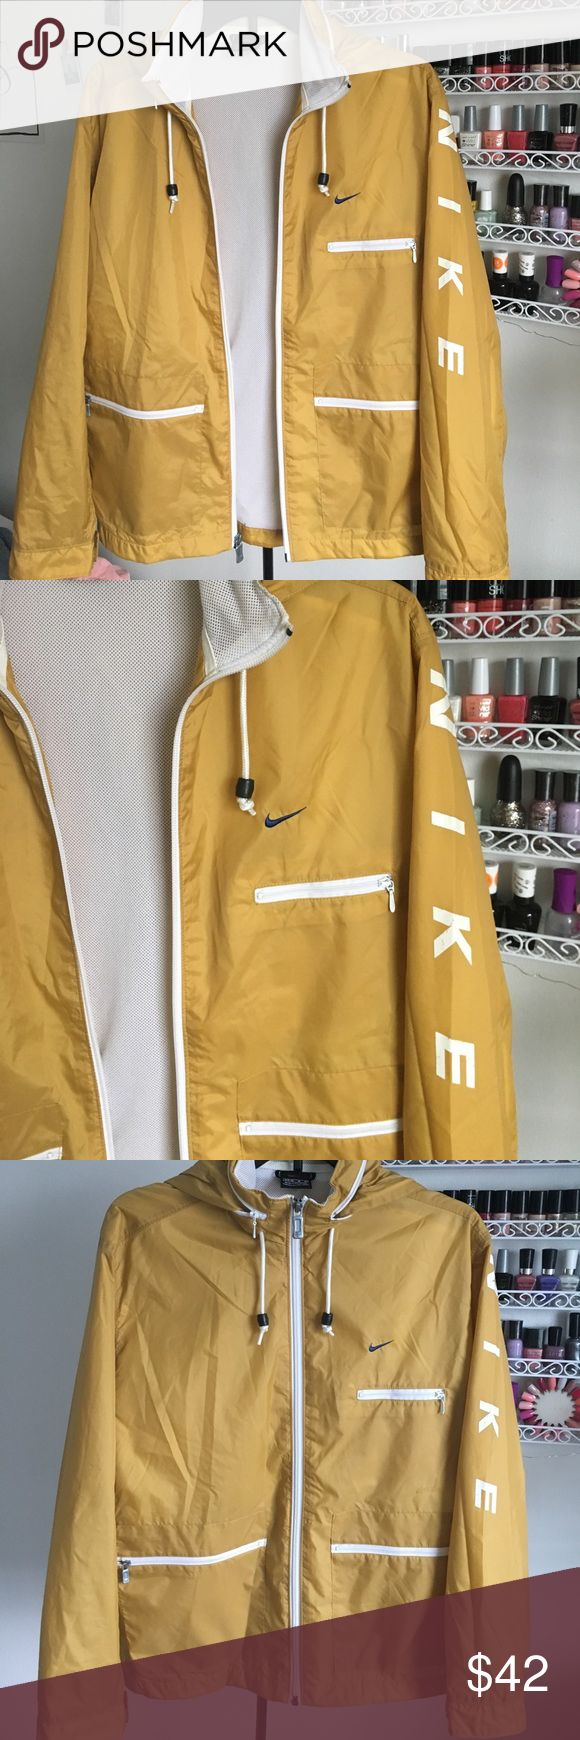 Vintage Nike Windbreaker Rain Jacket ☔️ - Mustard Yellow Windbreaker Rain Jacket by Nike (Vintage, found at an antique store) - LIGHTWEIGHT FOR SPRING - multiple zipper pockets and a hood that can be inserted and hidden into the collar of the jacket! - adjustable em sleeves (can be tightened or loosene) MAKE AN OFFER Nike Jackets & Coats Utility Jackets